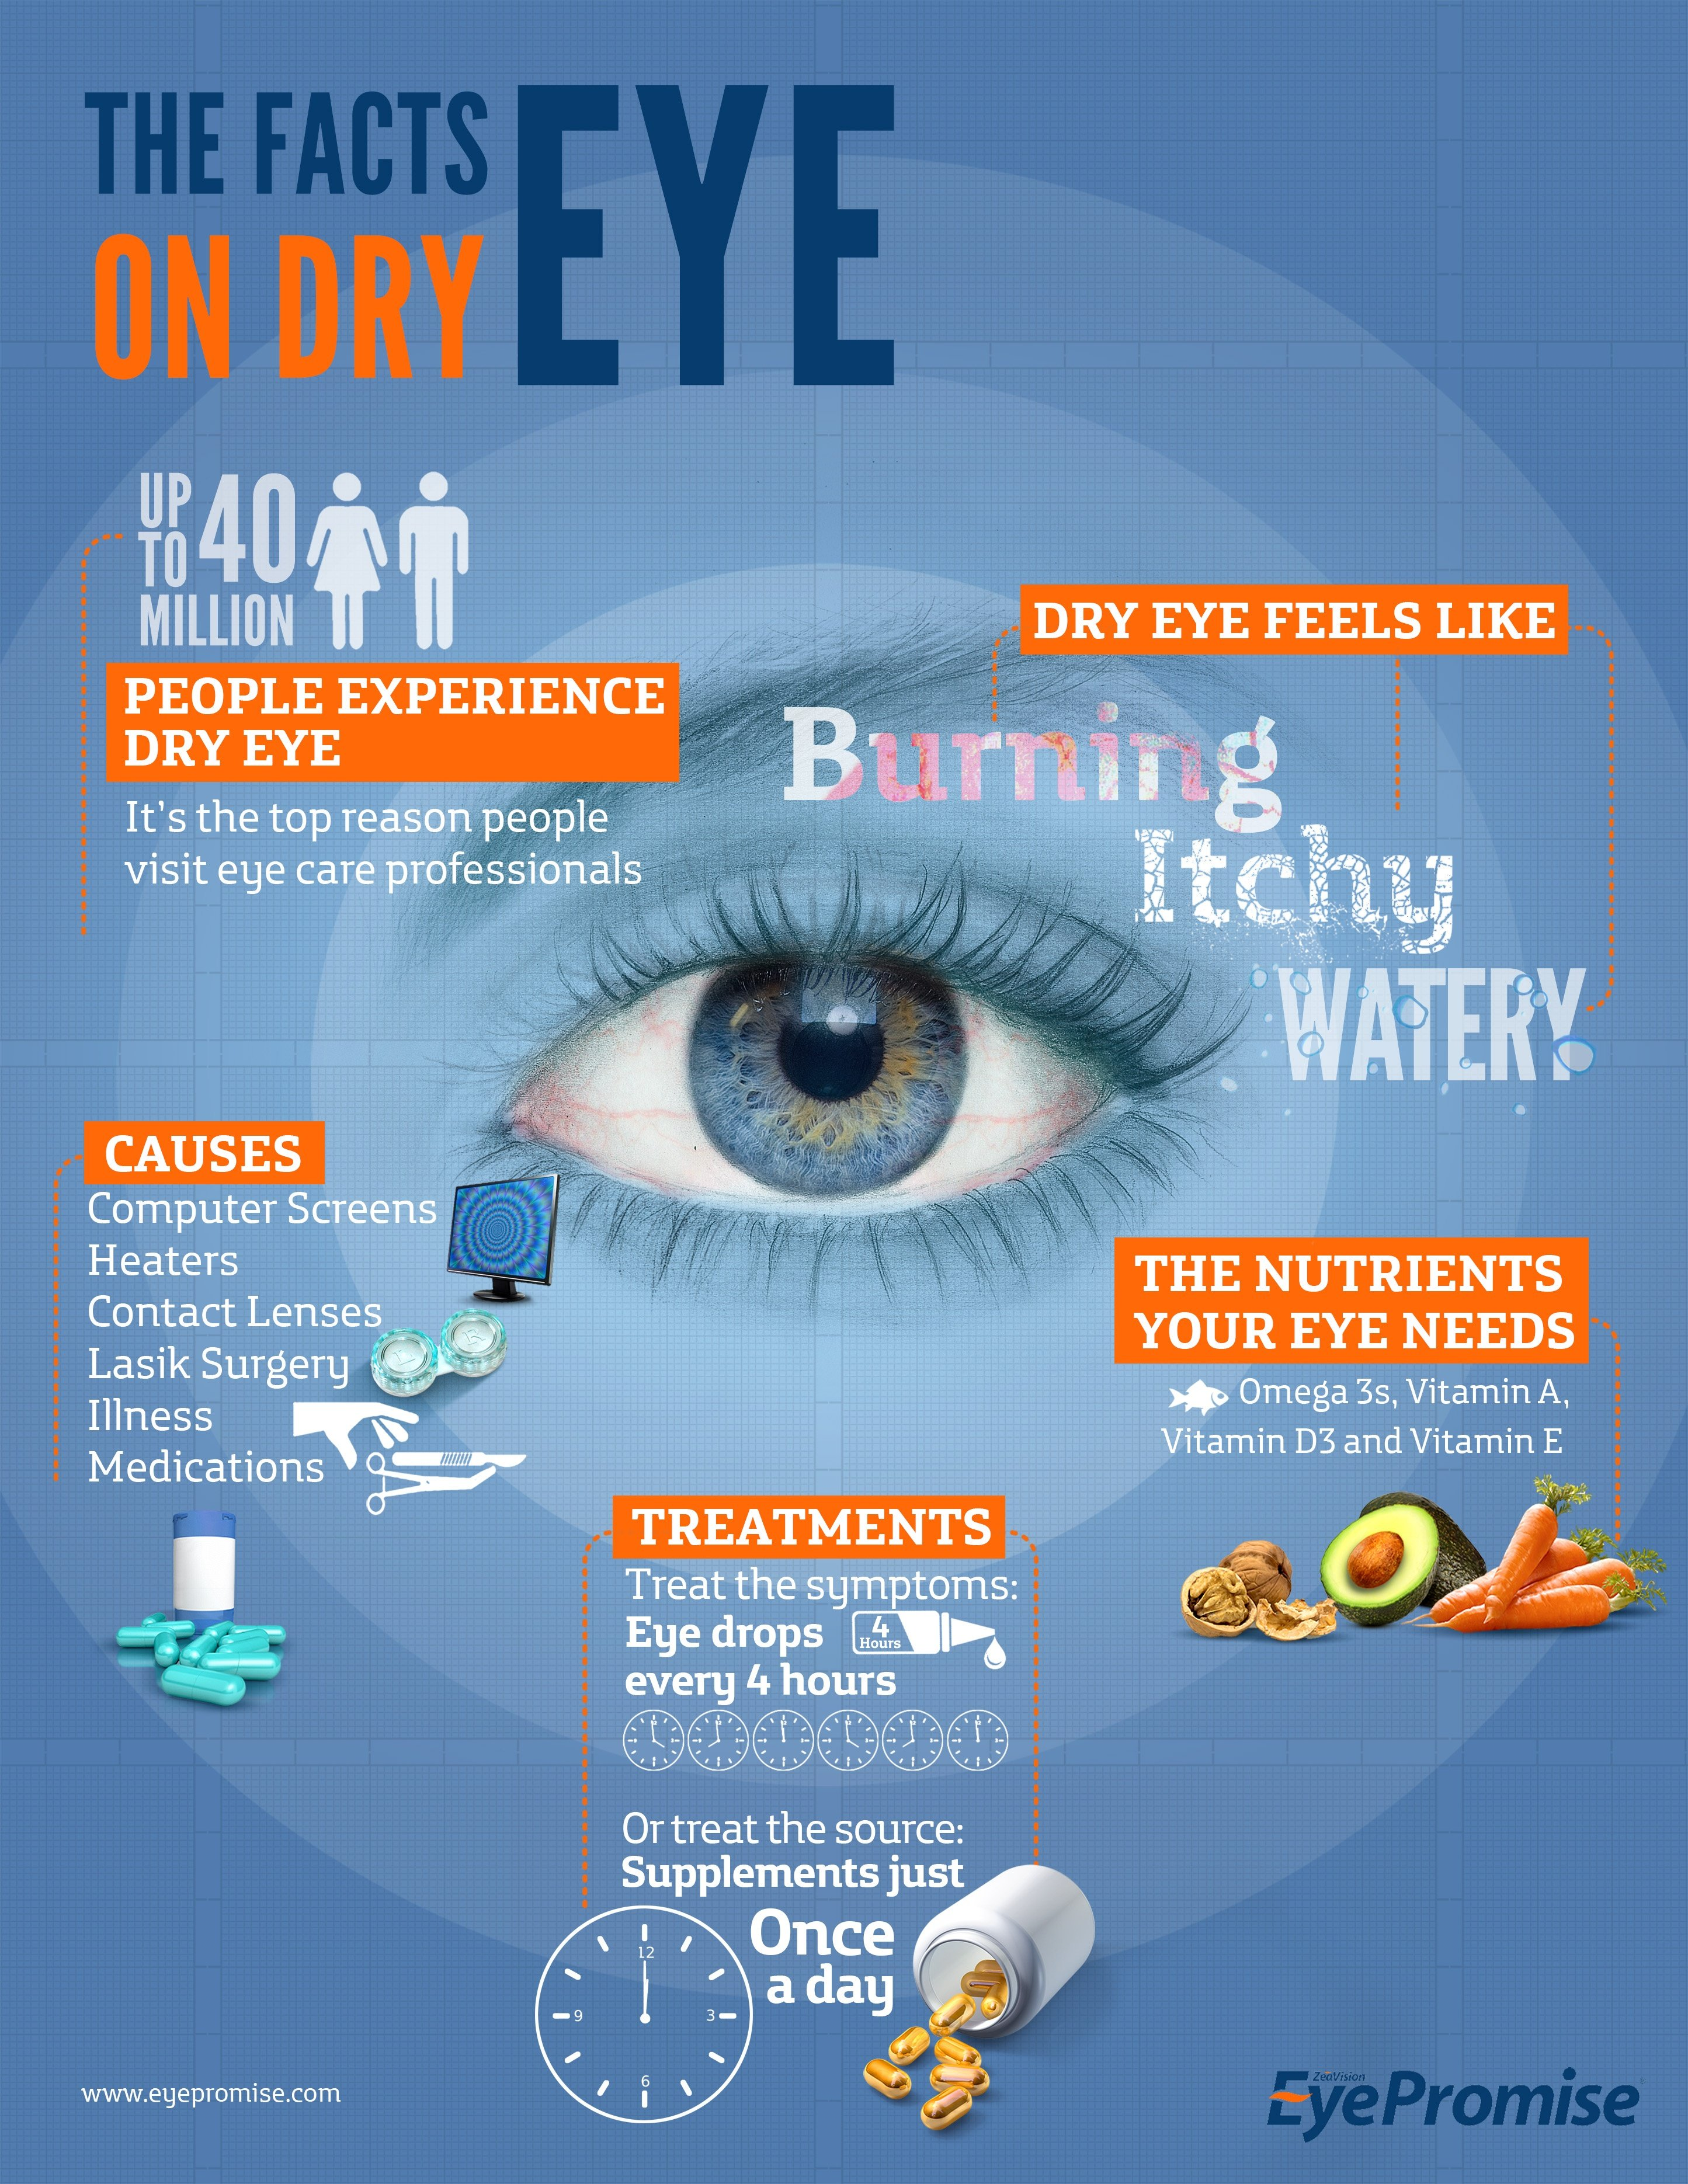 Get the facts on dry eye in this simple infographic.